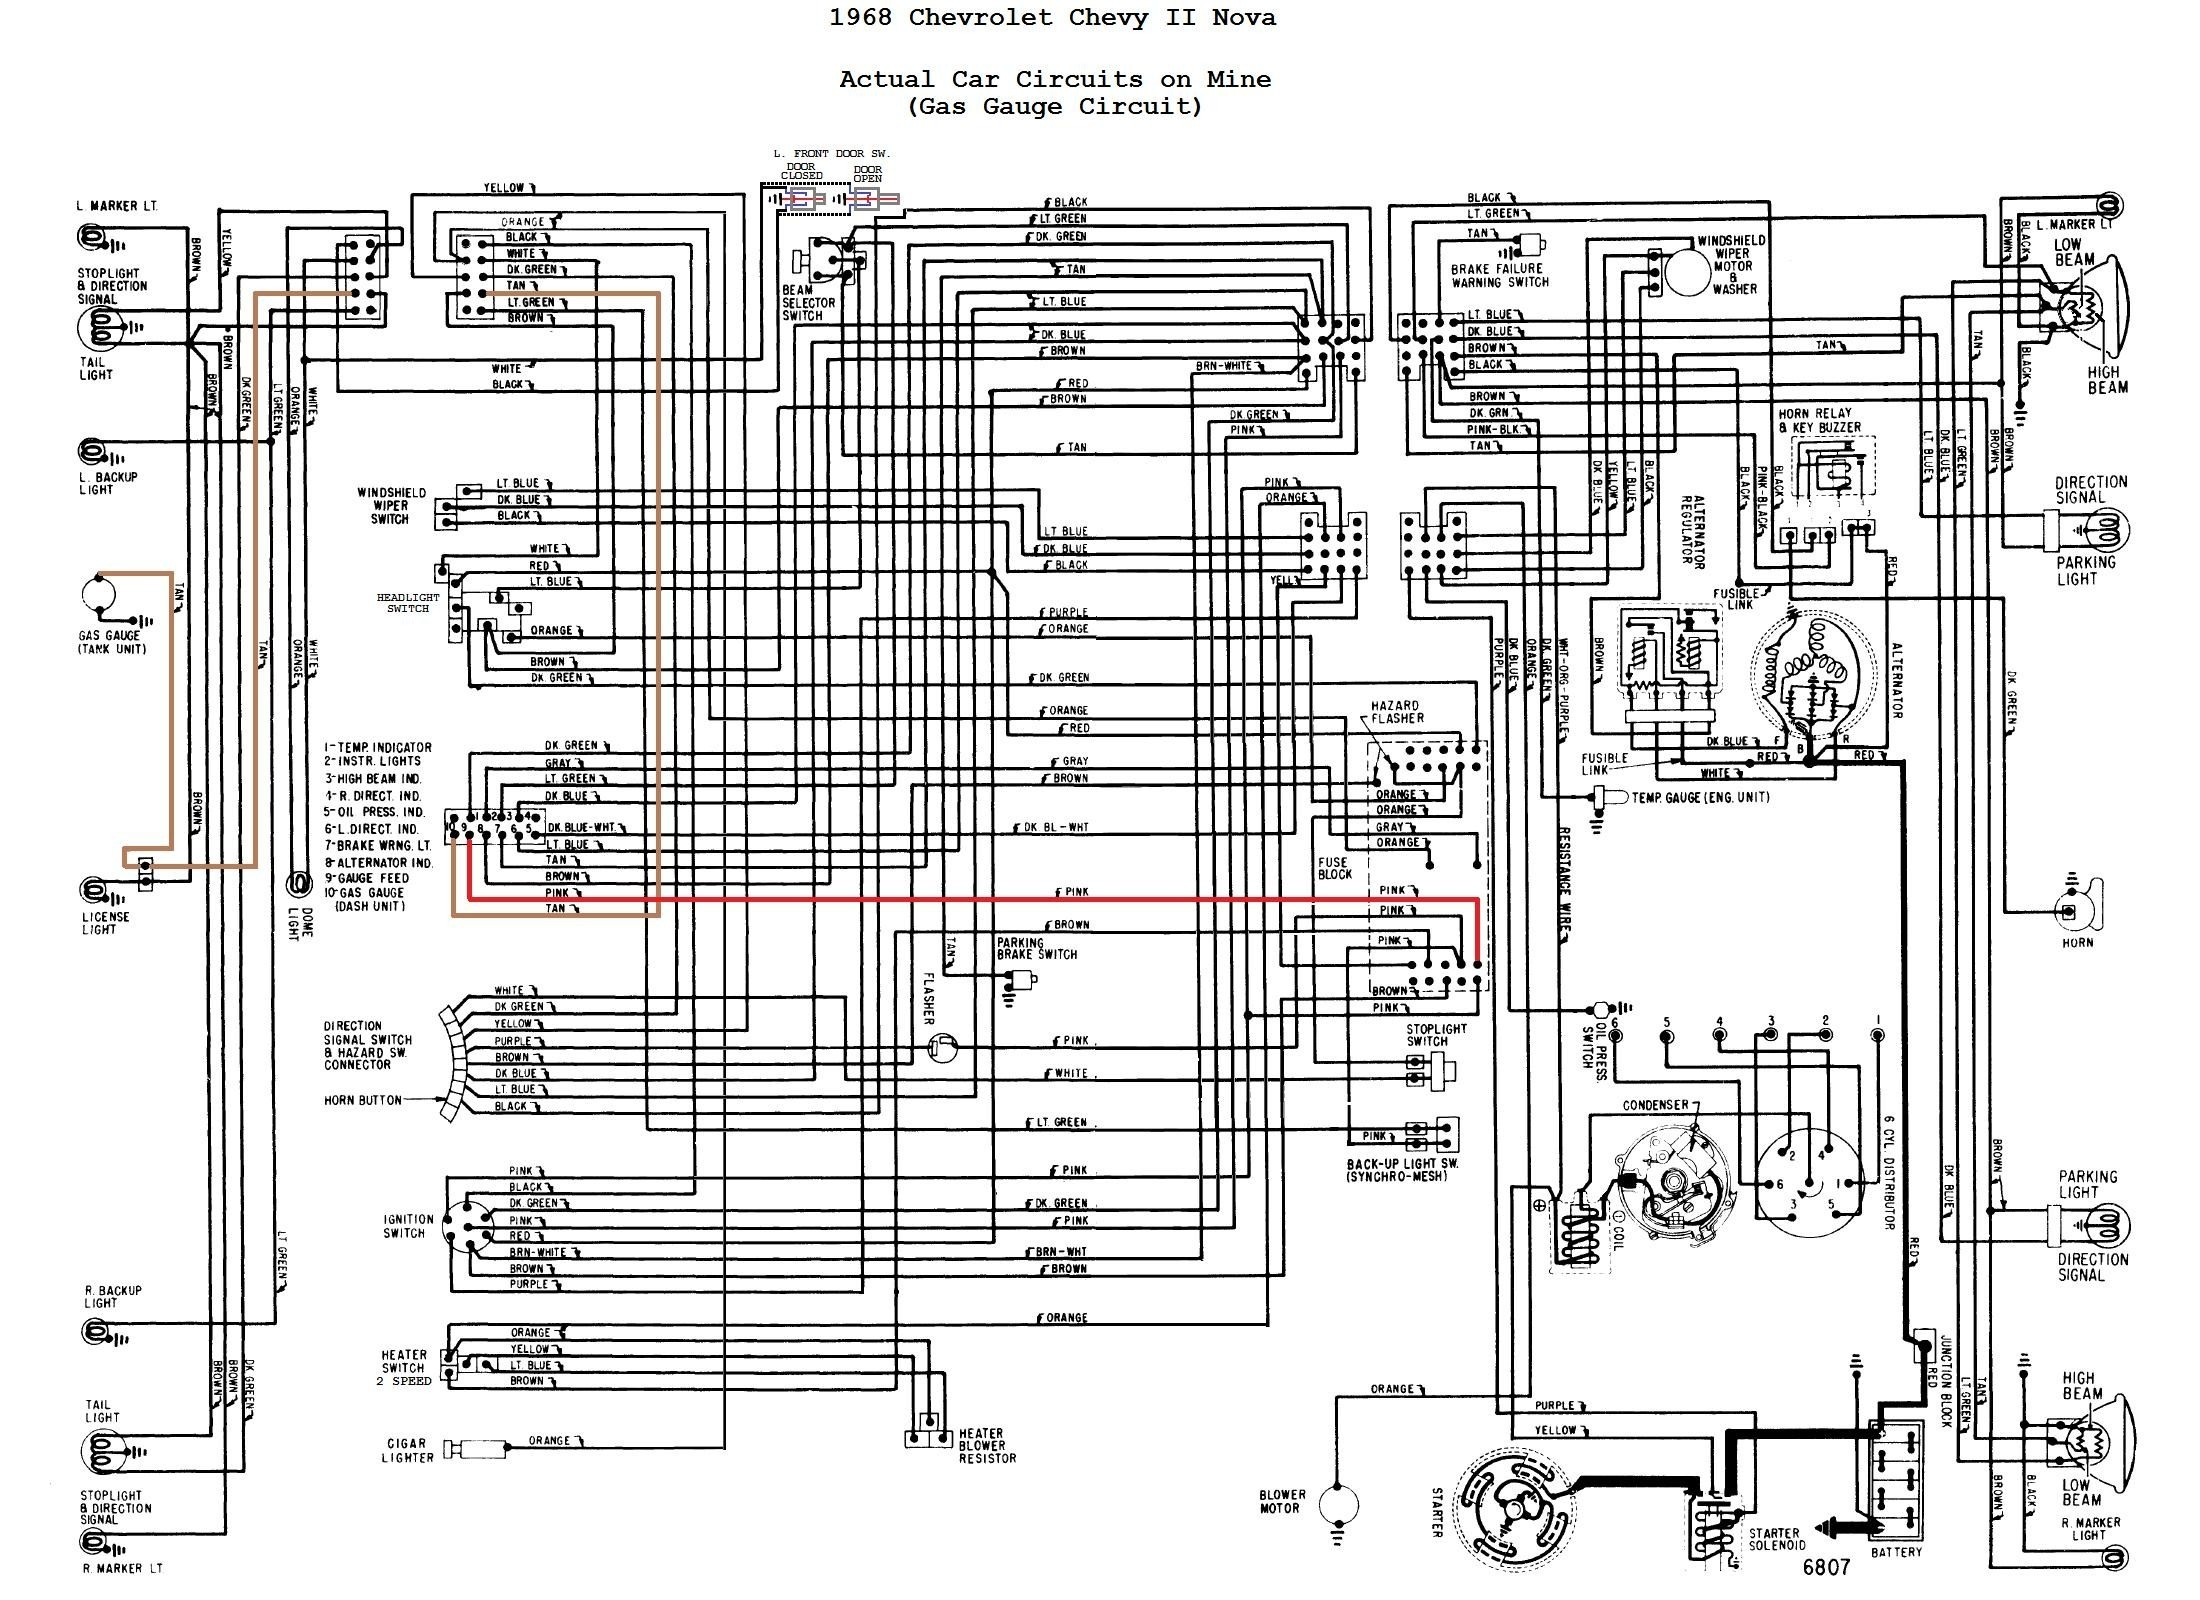 1967 gto wiring diagram download